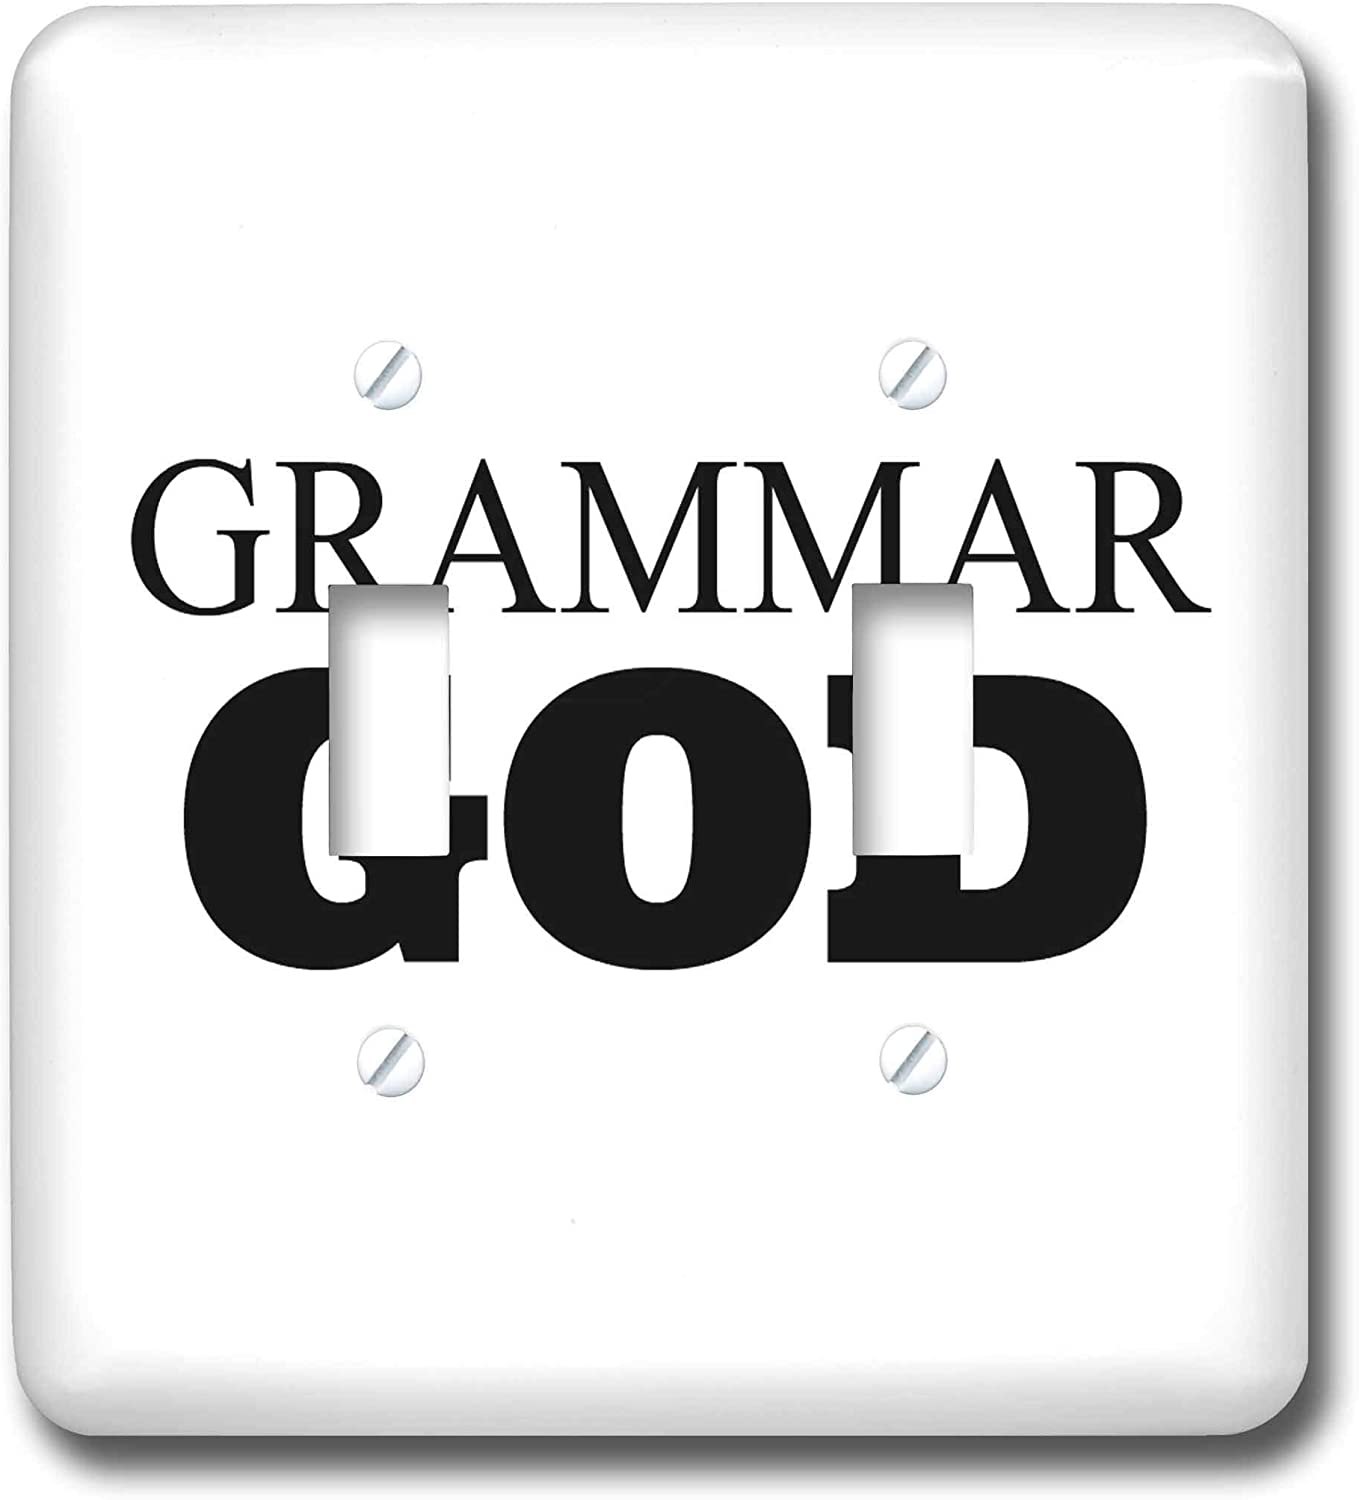 3dRose Carrie Merchant 3drose Quote - Image of Grammar God - double toggle switch (lsp_308325_2)